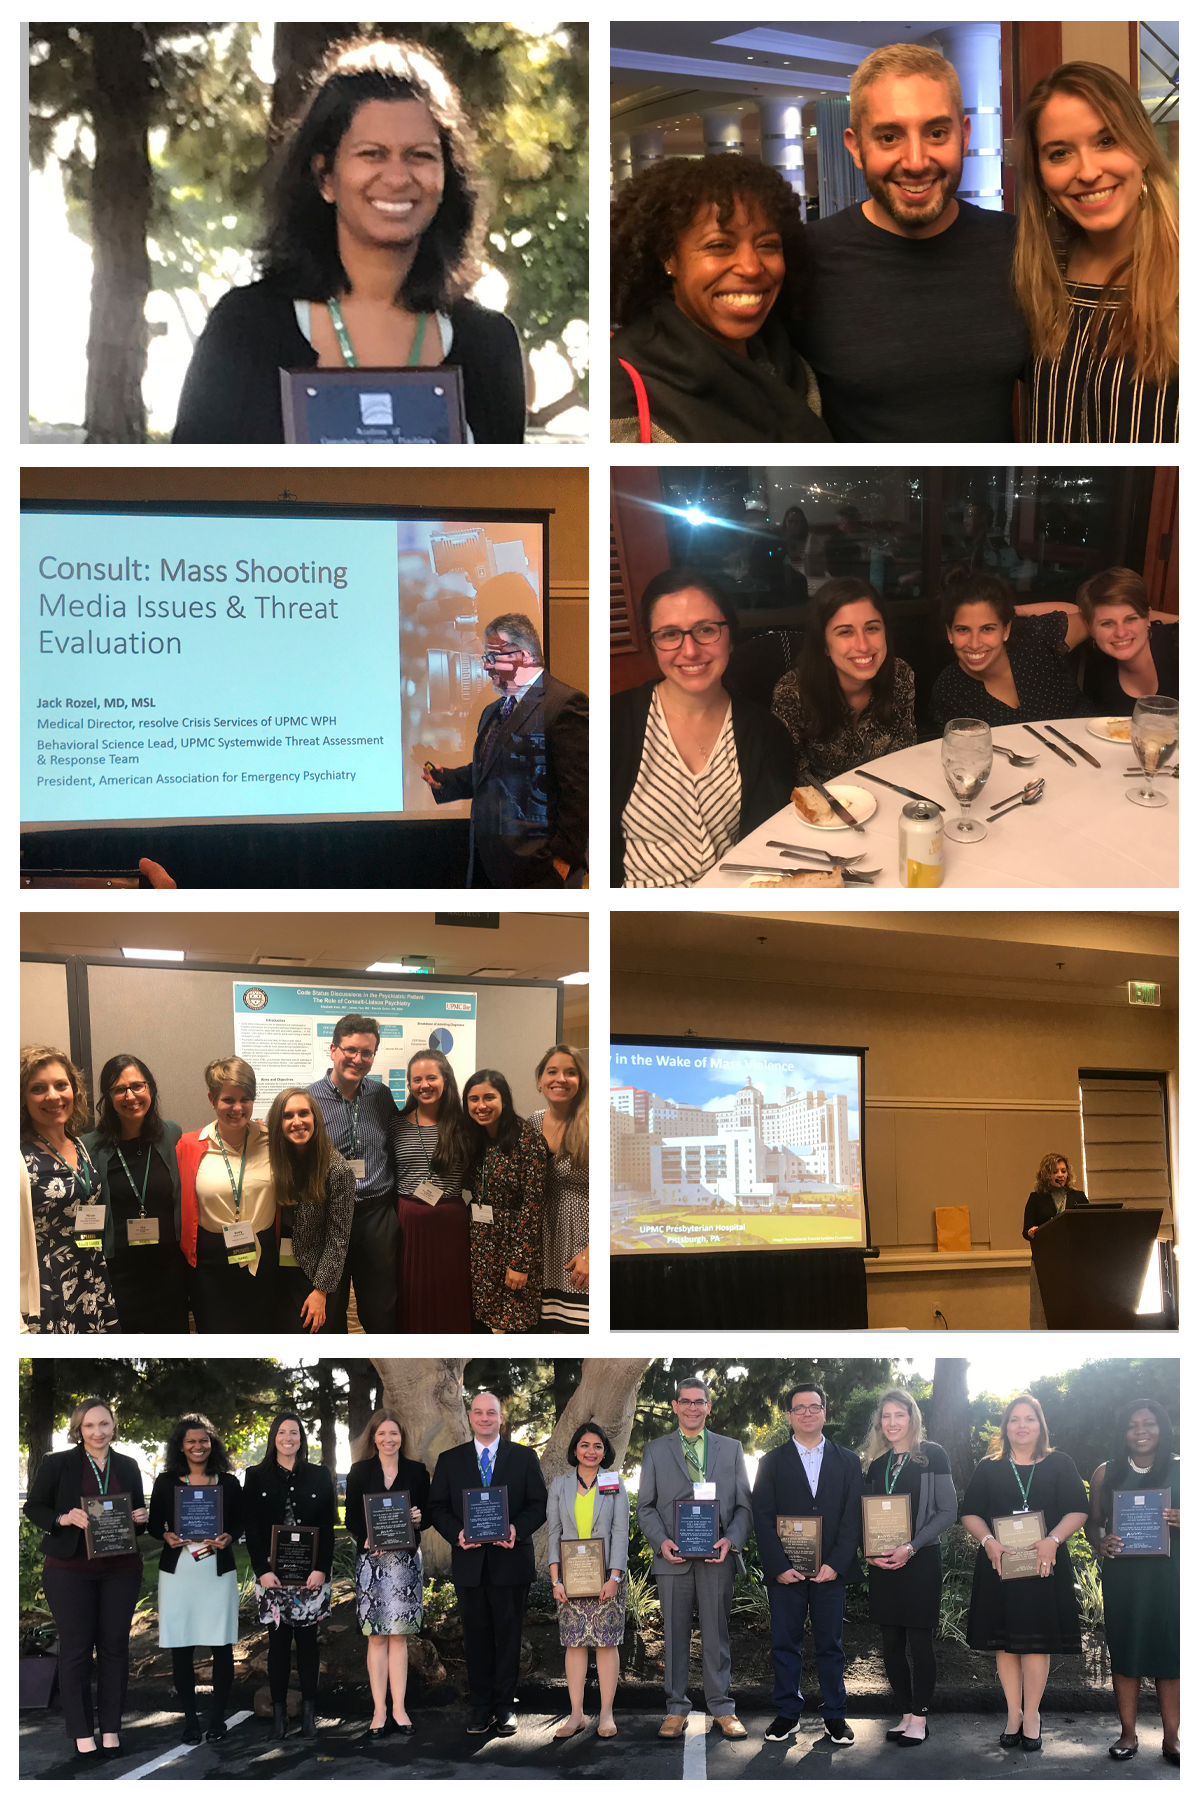 ACLP 2019 Collage 1